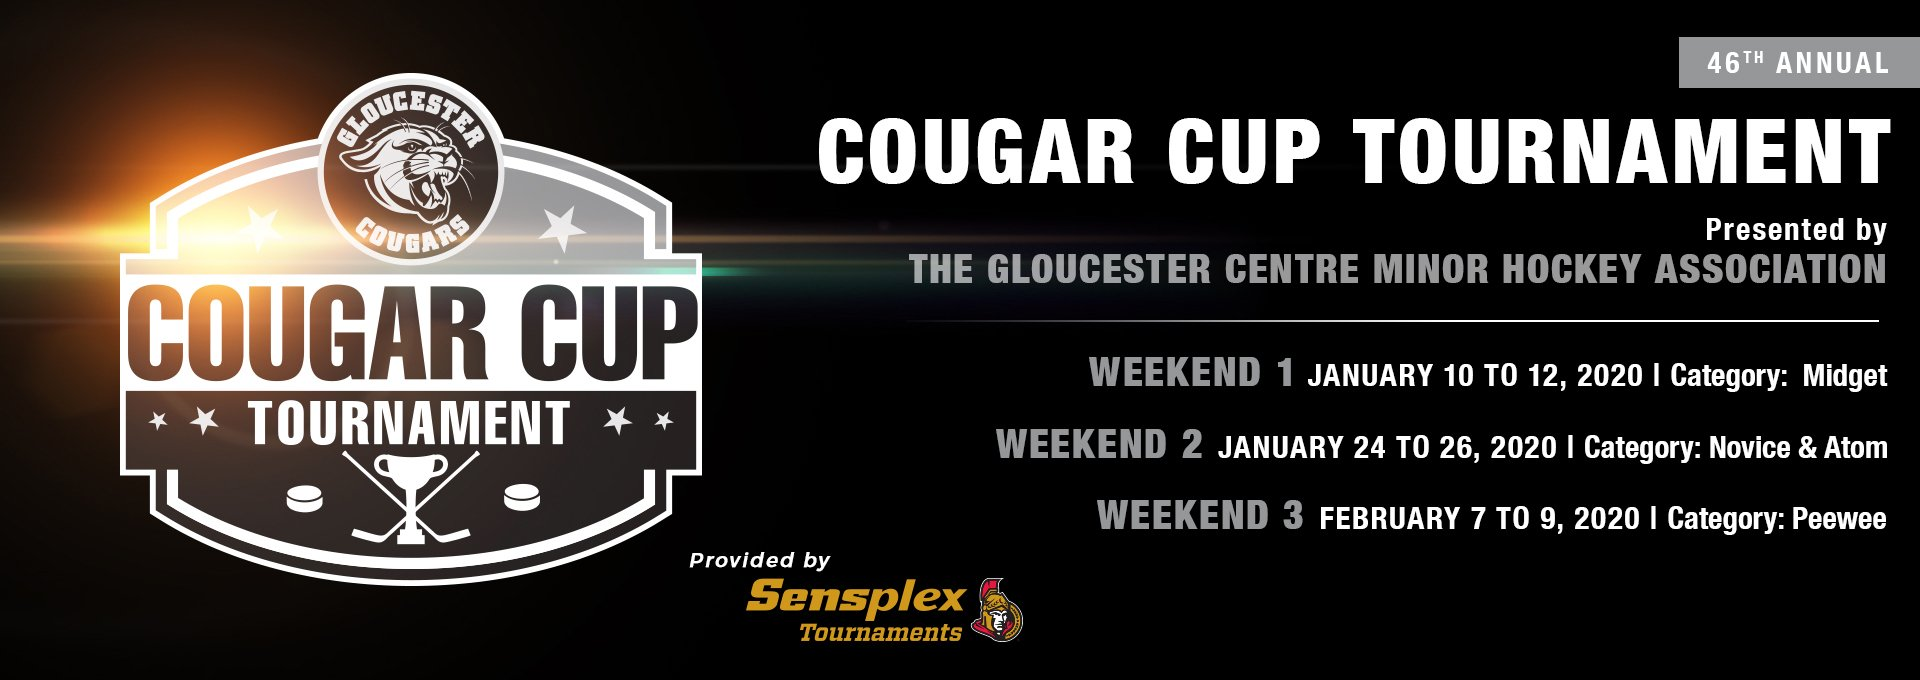 Cougar Cup Tournament